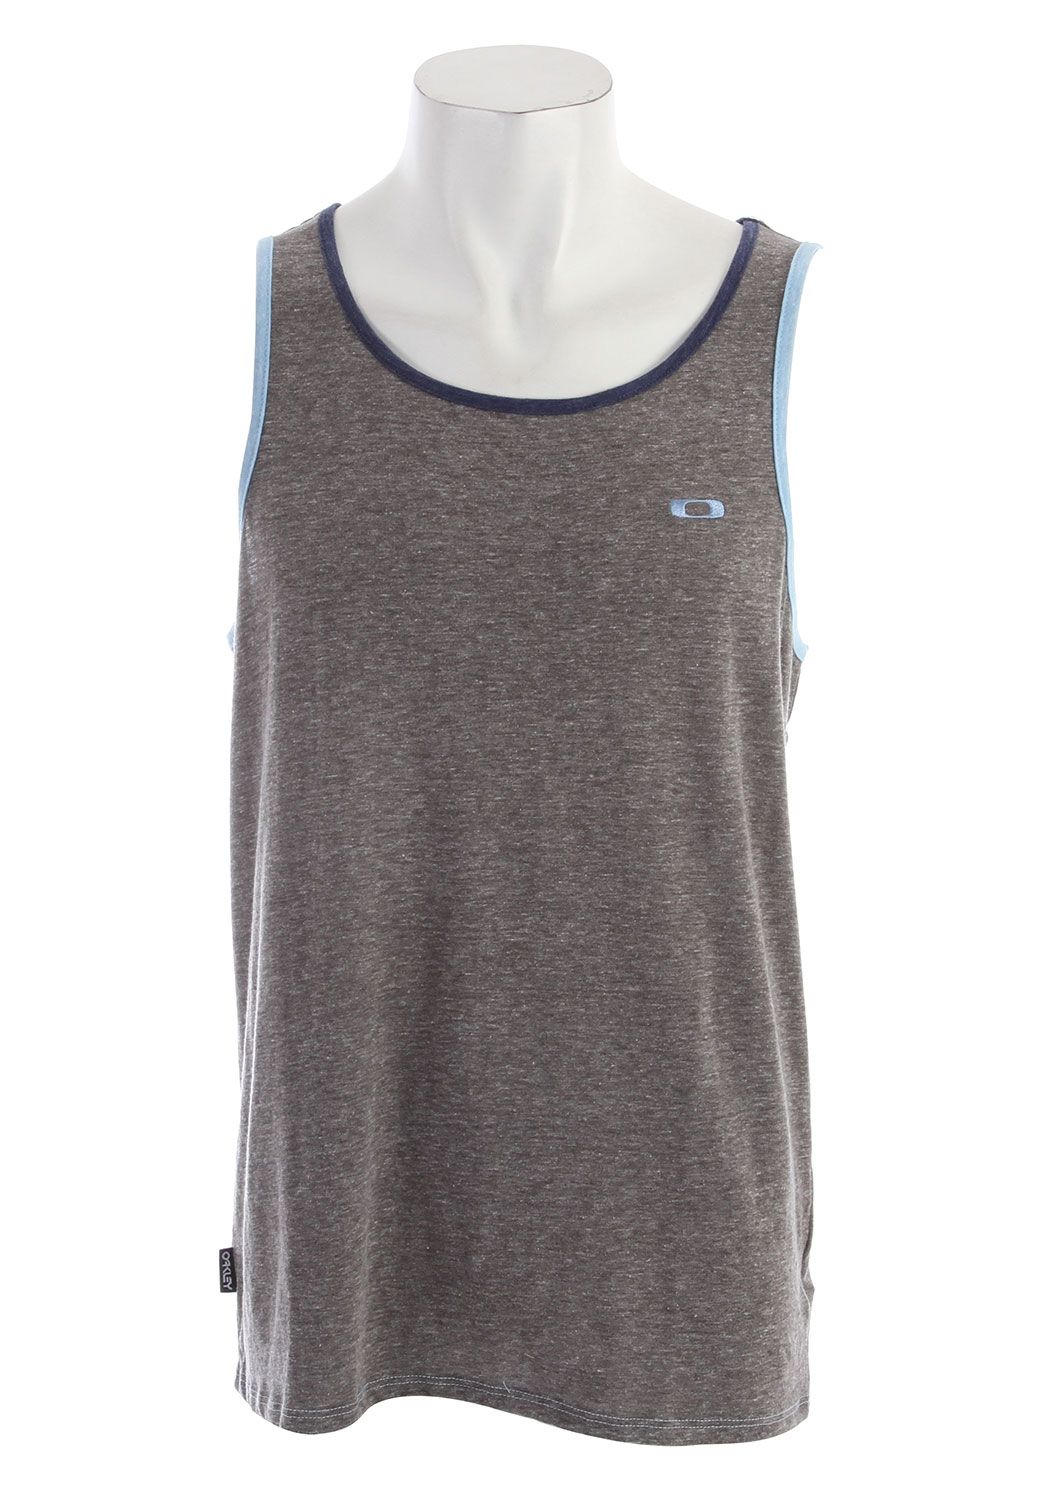 Surf Tri-blend tank top with contrast self binding at sleeves and neck, front logo embroidery and side flagKey Features of the Oakley Maldives Tank: 50% cotton 37% polyester 13% rayon - $25.00